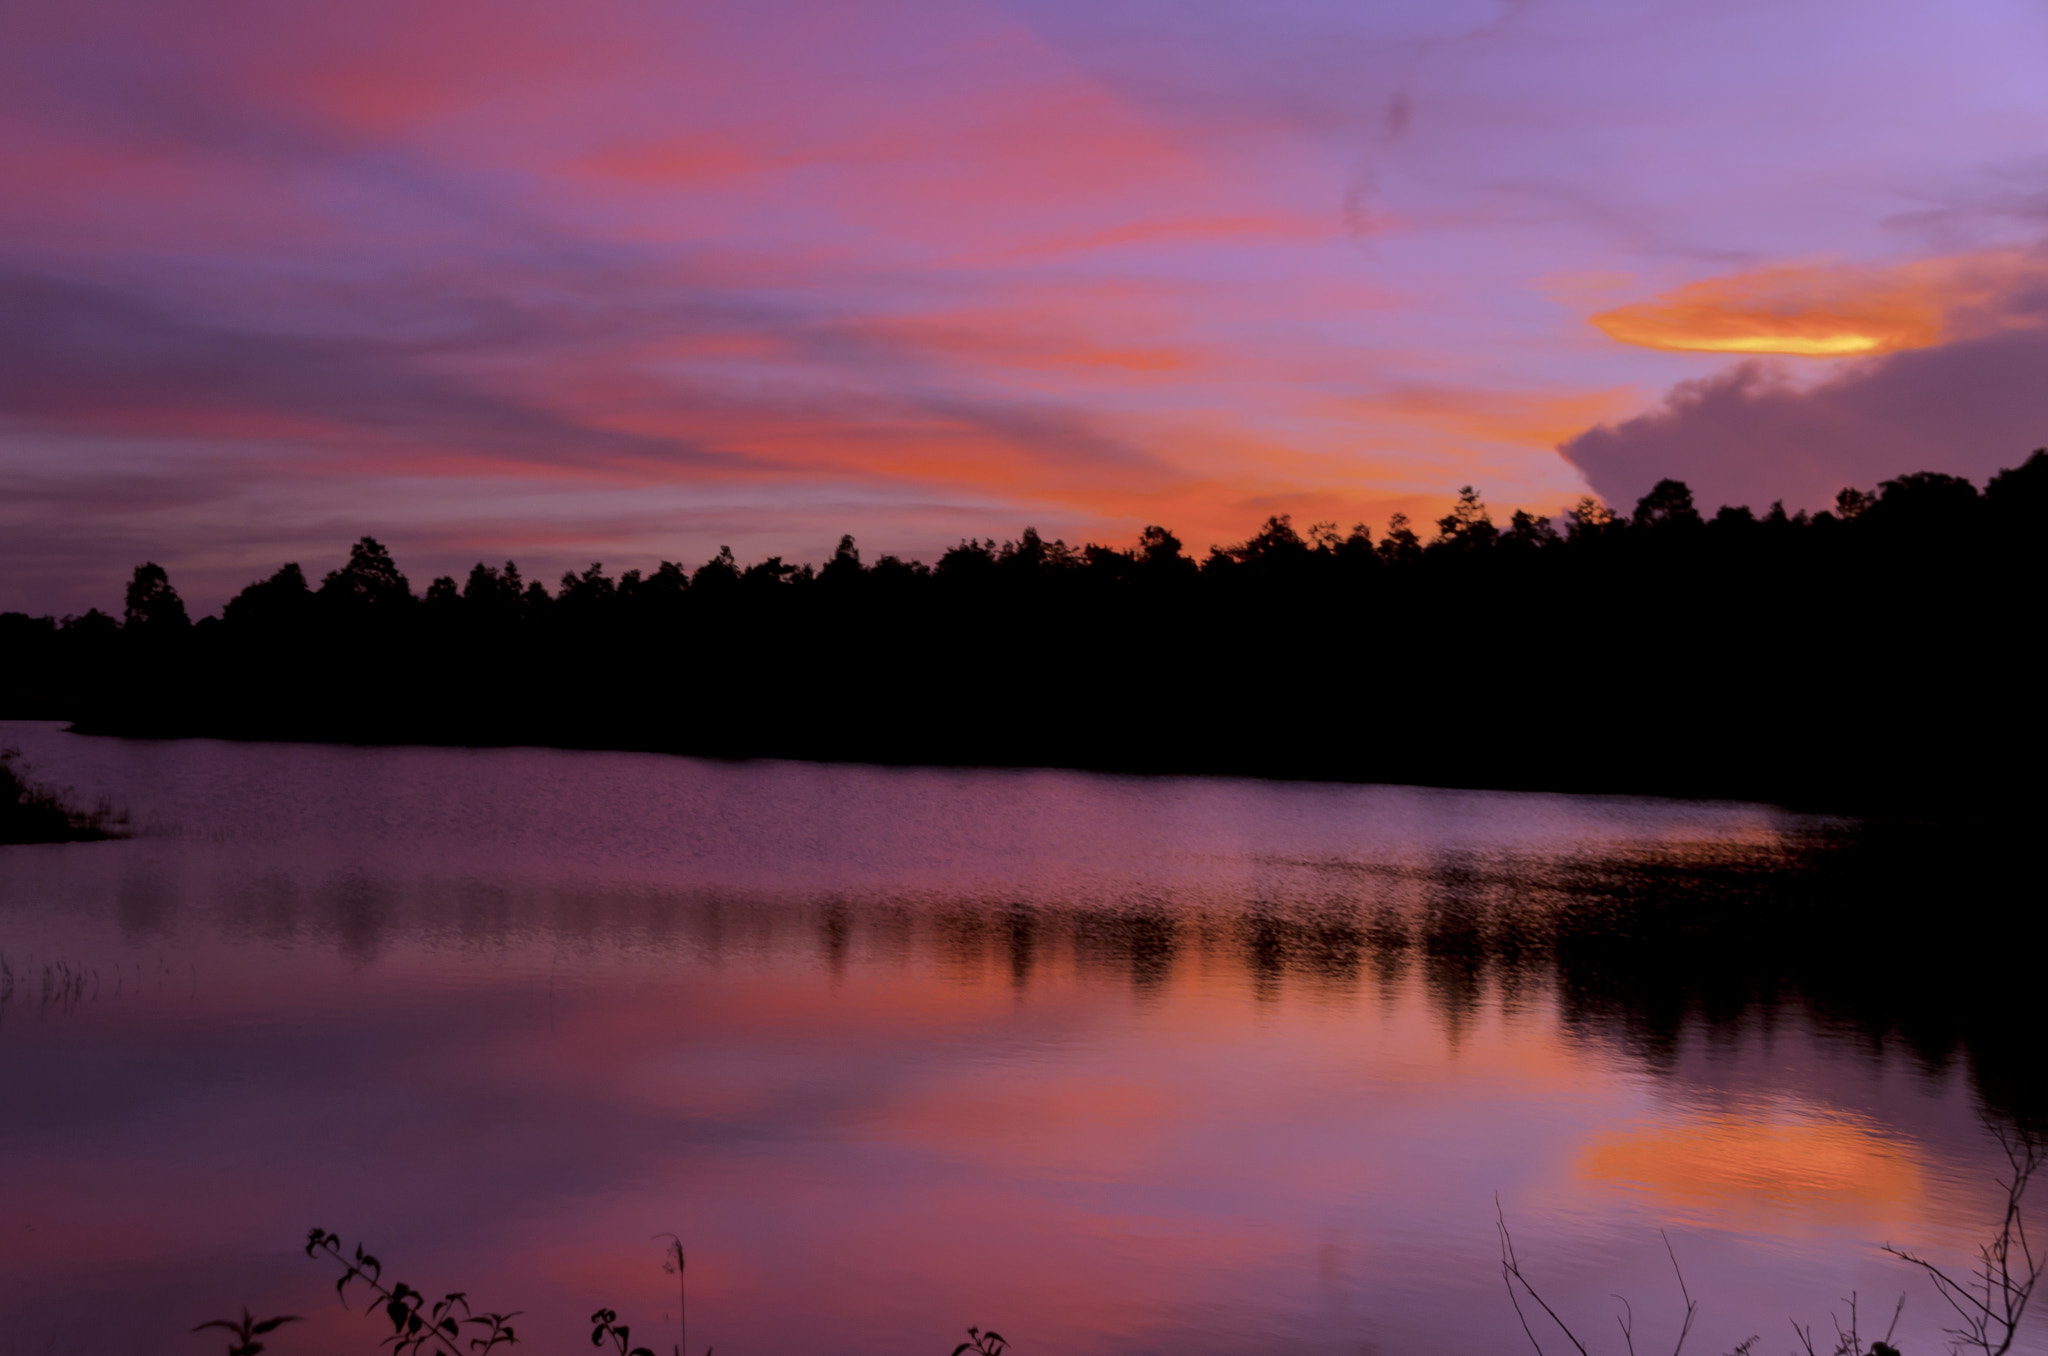 Photograph Sunset at Khao Yai National Park in Thailand by Sirinun Kaewchampa on 500px